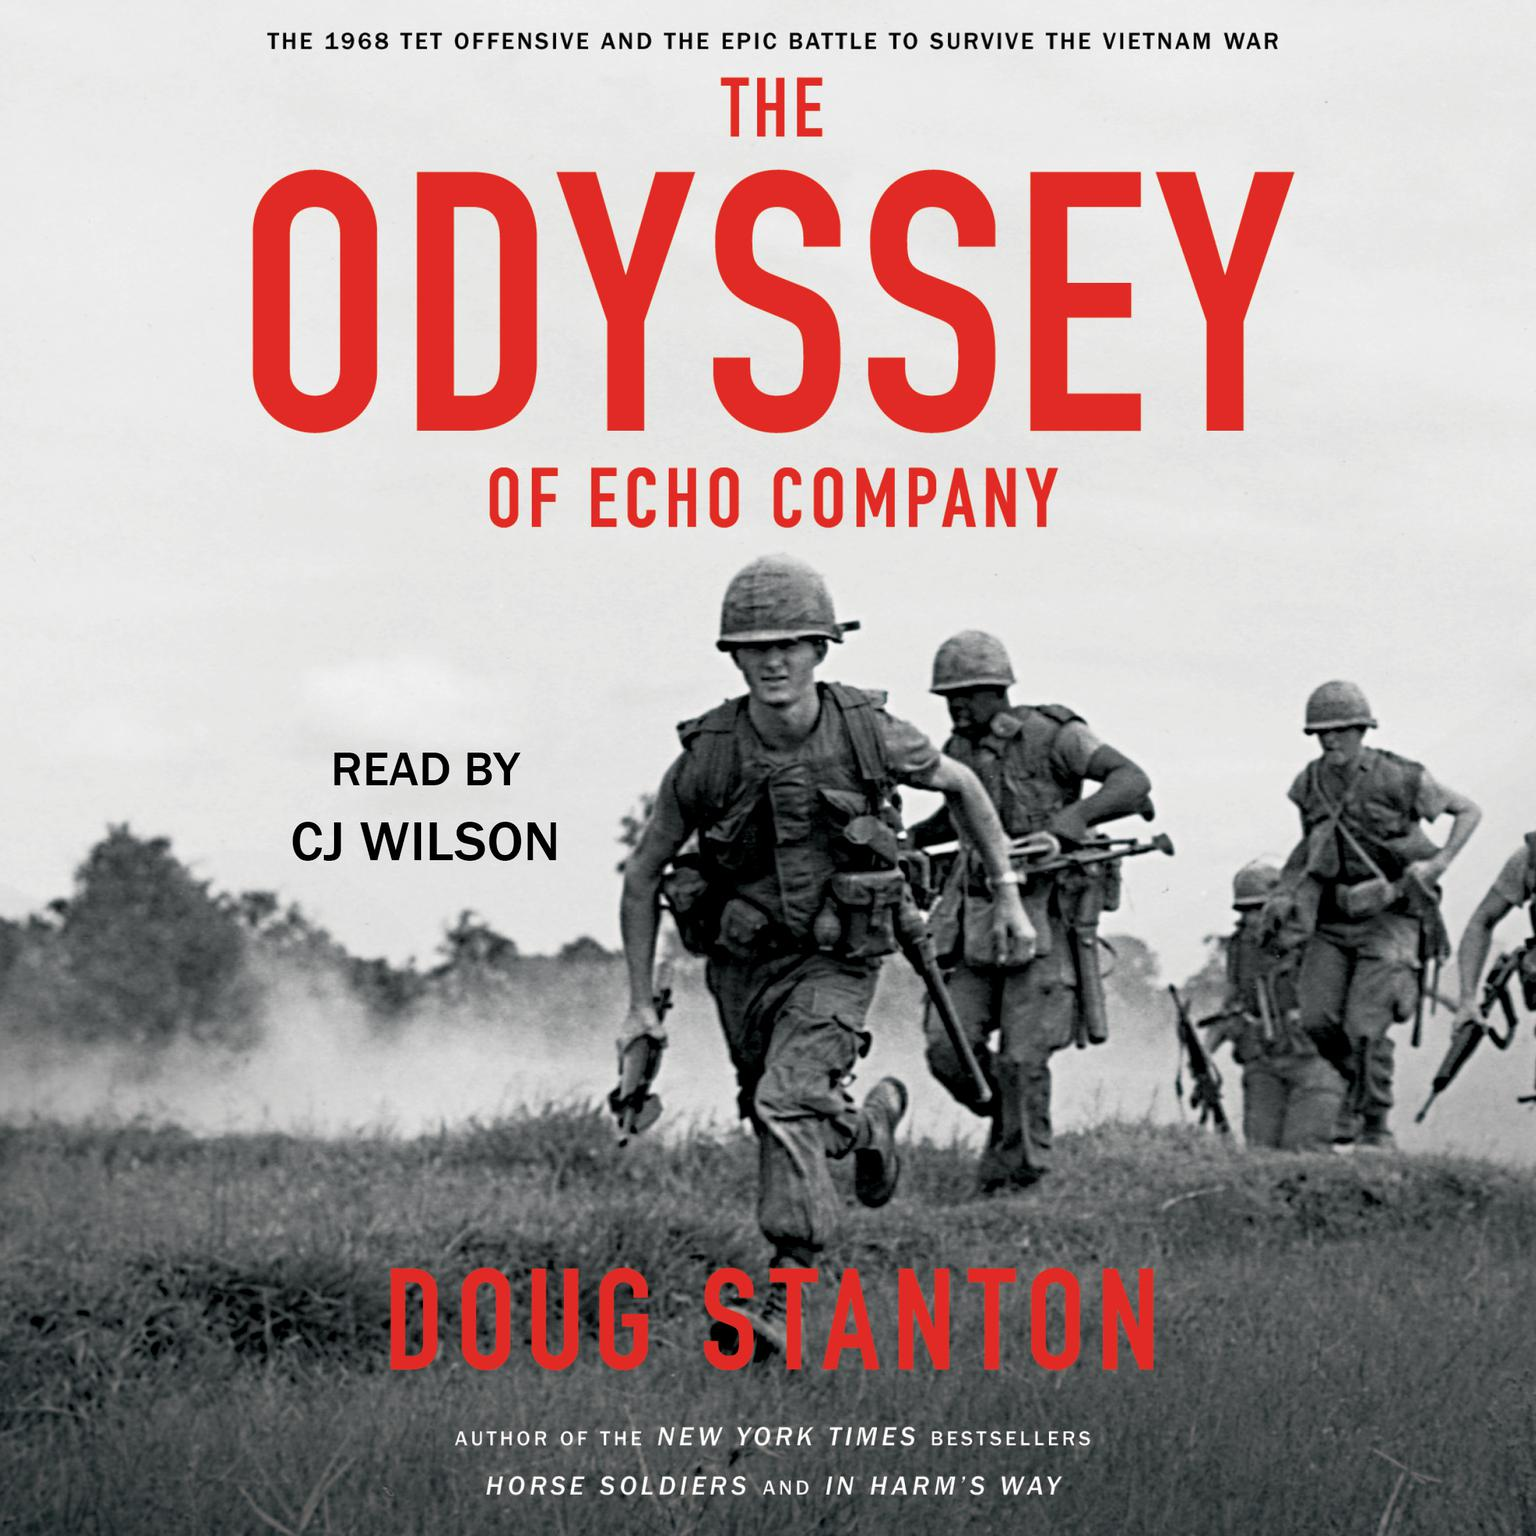 Printable The Odyssey of Echo Company: The 1968 Tet Offensive and the Epic Battle to Survive the Vietnam War Audiobook Cover Art